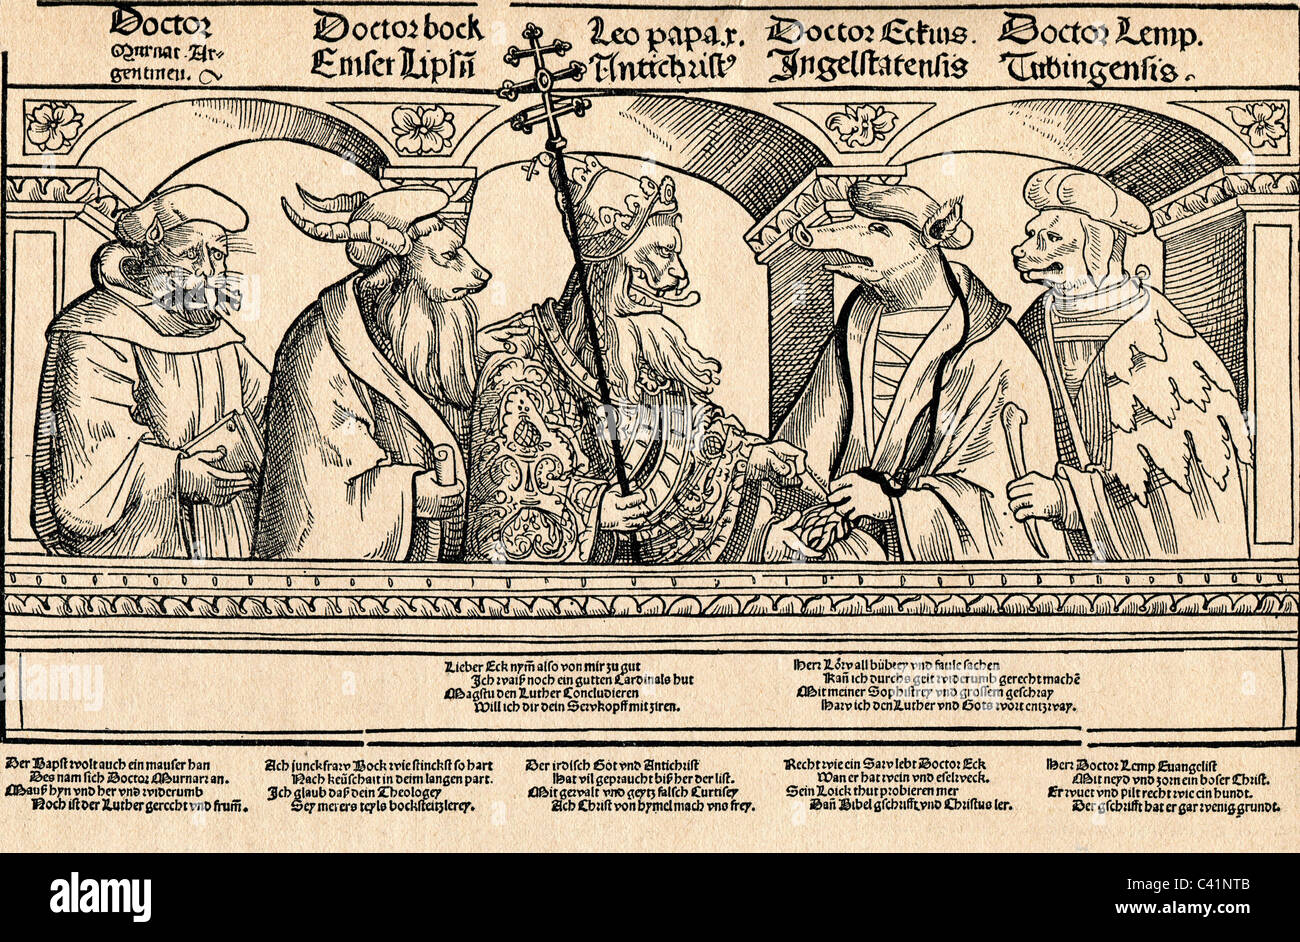 dbq protestant reformation of the sixteenth century Paul a bishop introduction_____________________________________ the  beginning and later growth of the protestant reformation of the 16 th century.